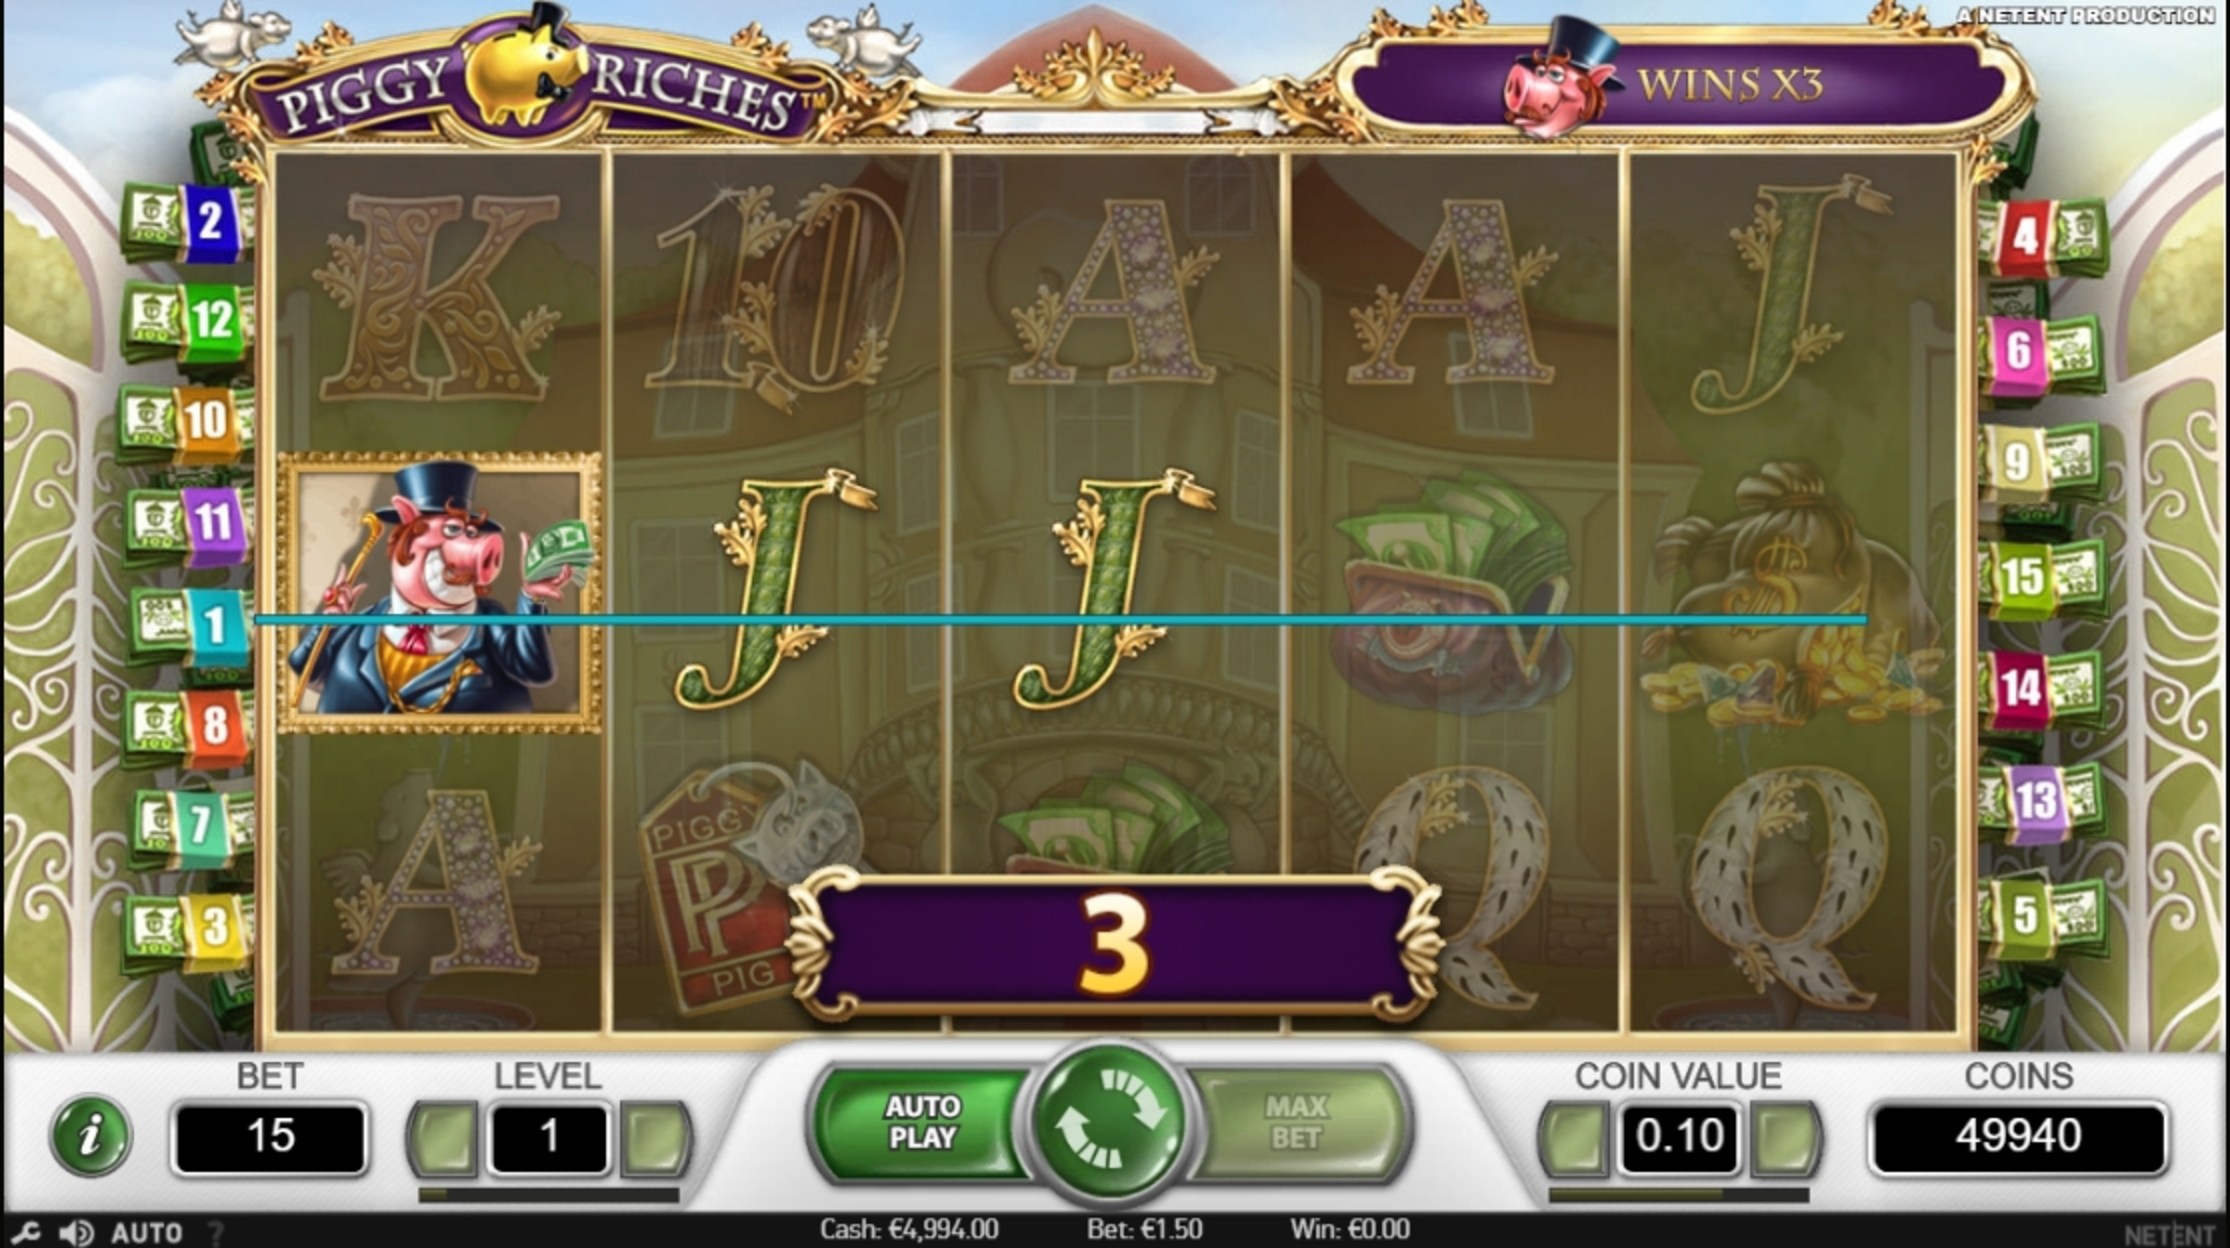 Win Money in Piggy Riches Free Slot Game by NetEnt